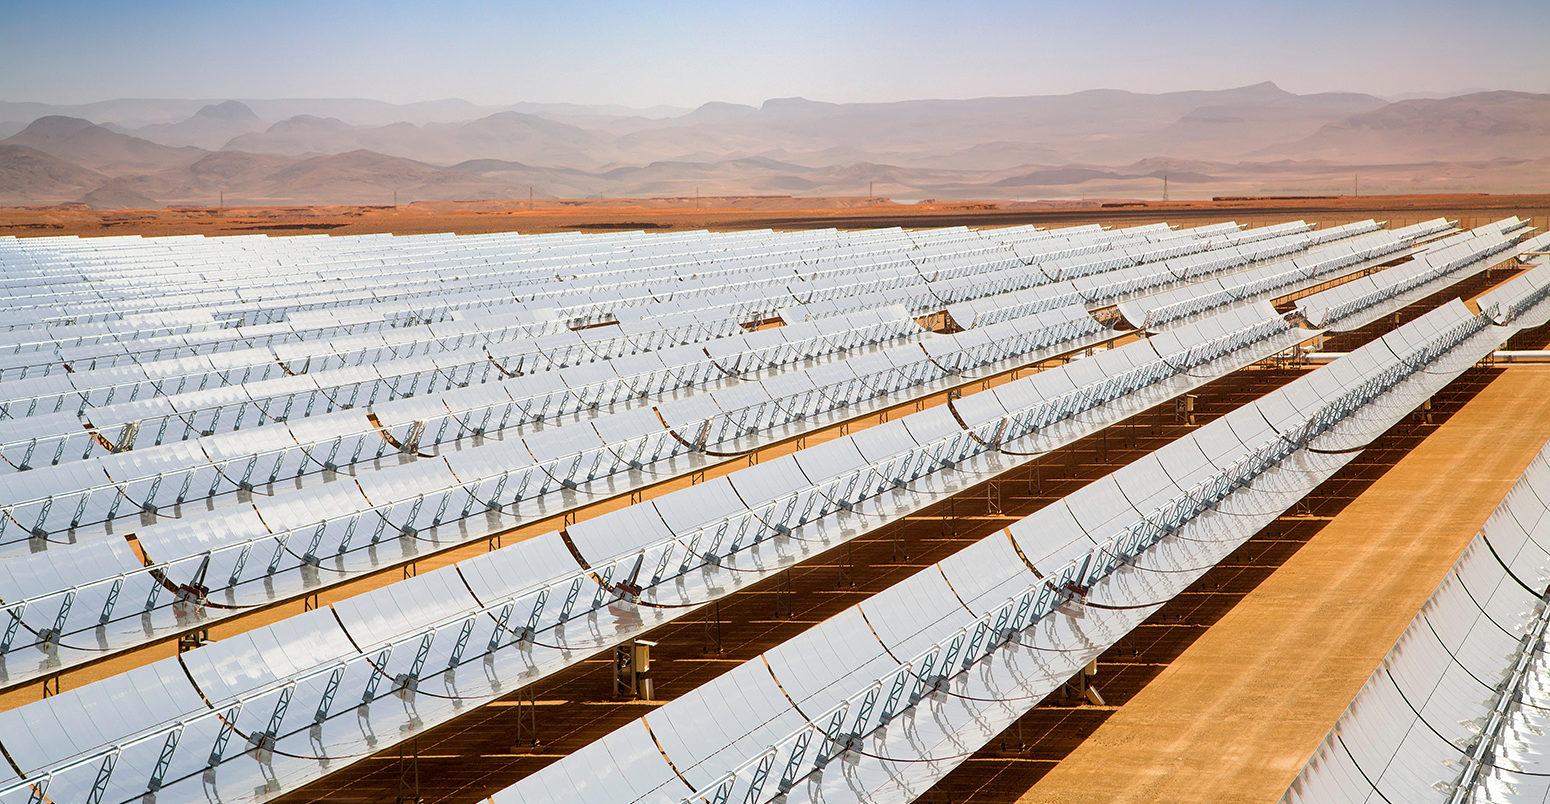 Solar thermal sustainable energy, Noor Ouarzazate Concentrated Solar Power Station Complex. Morocco, Maghreb North Africa